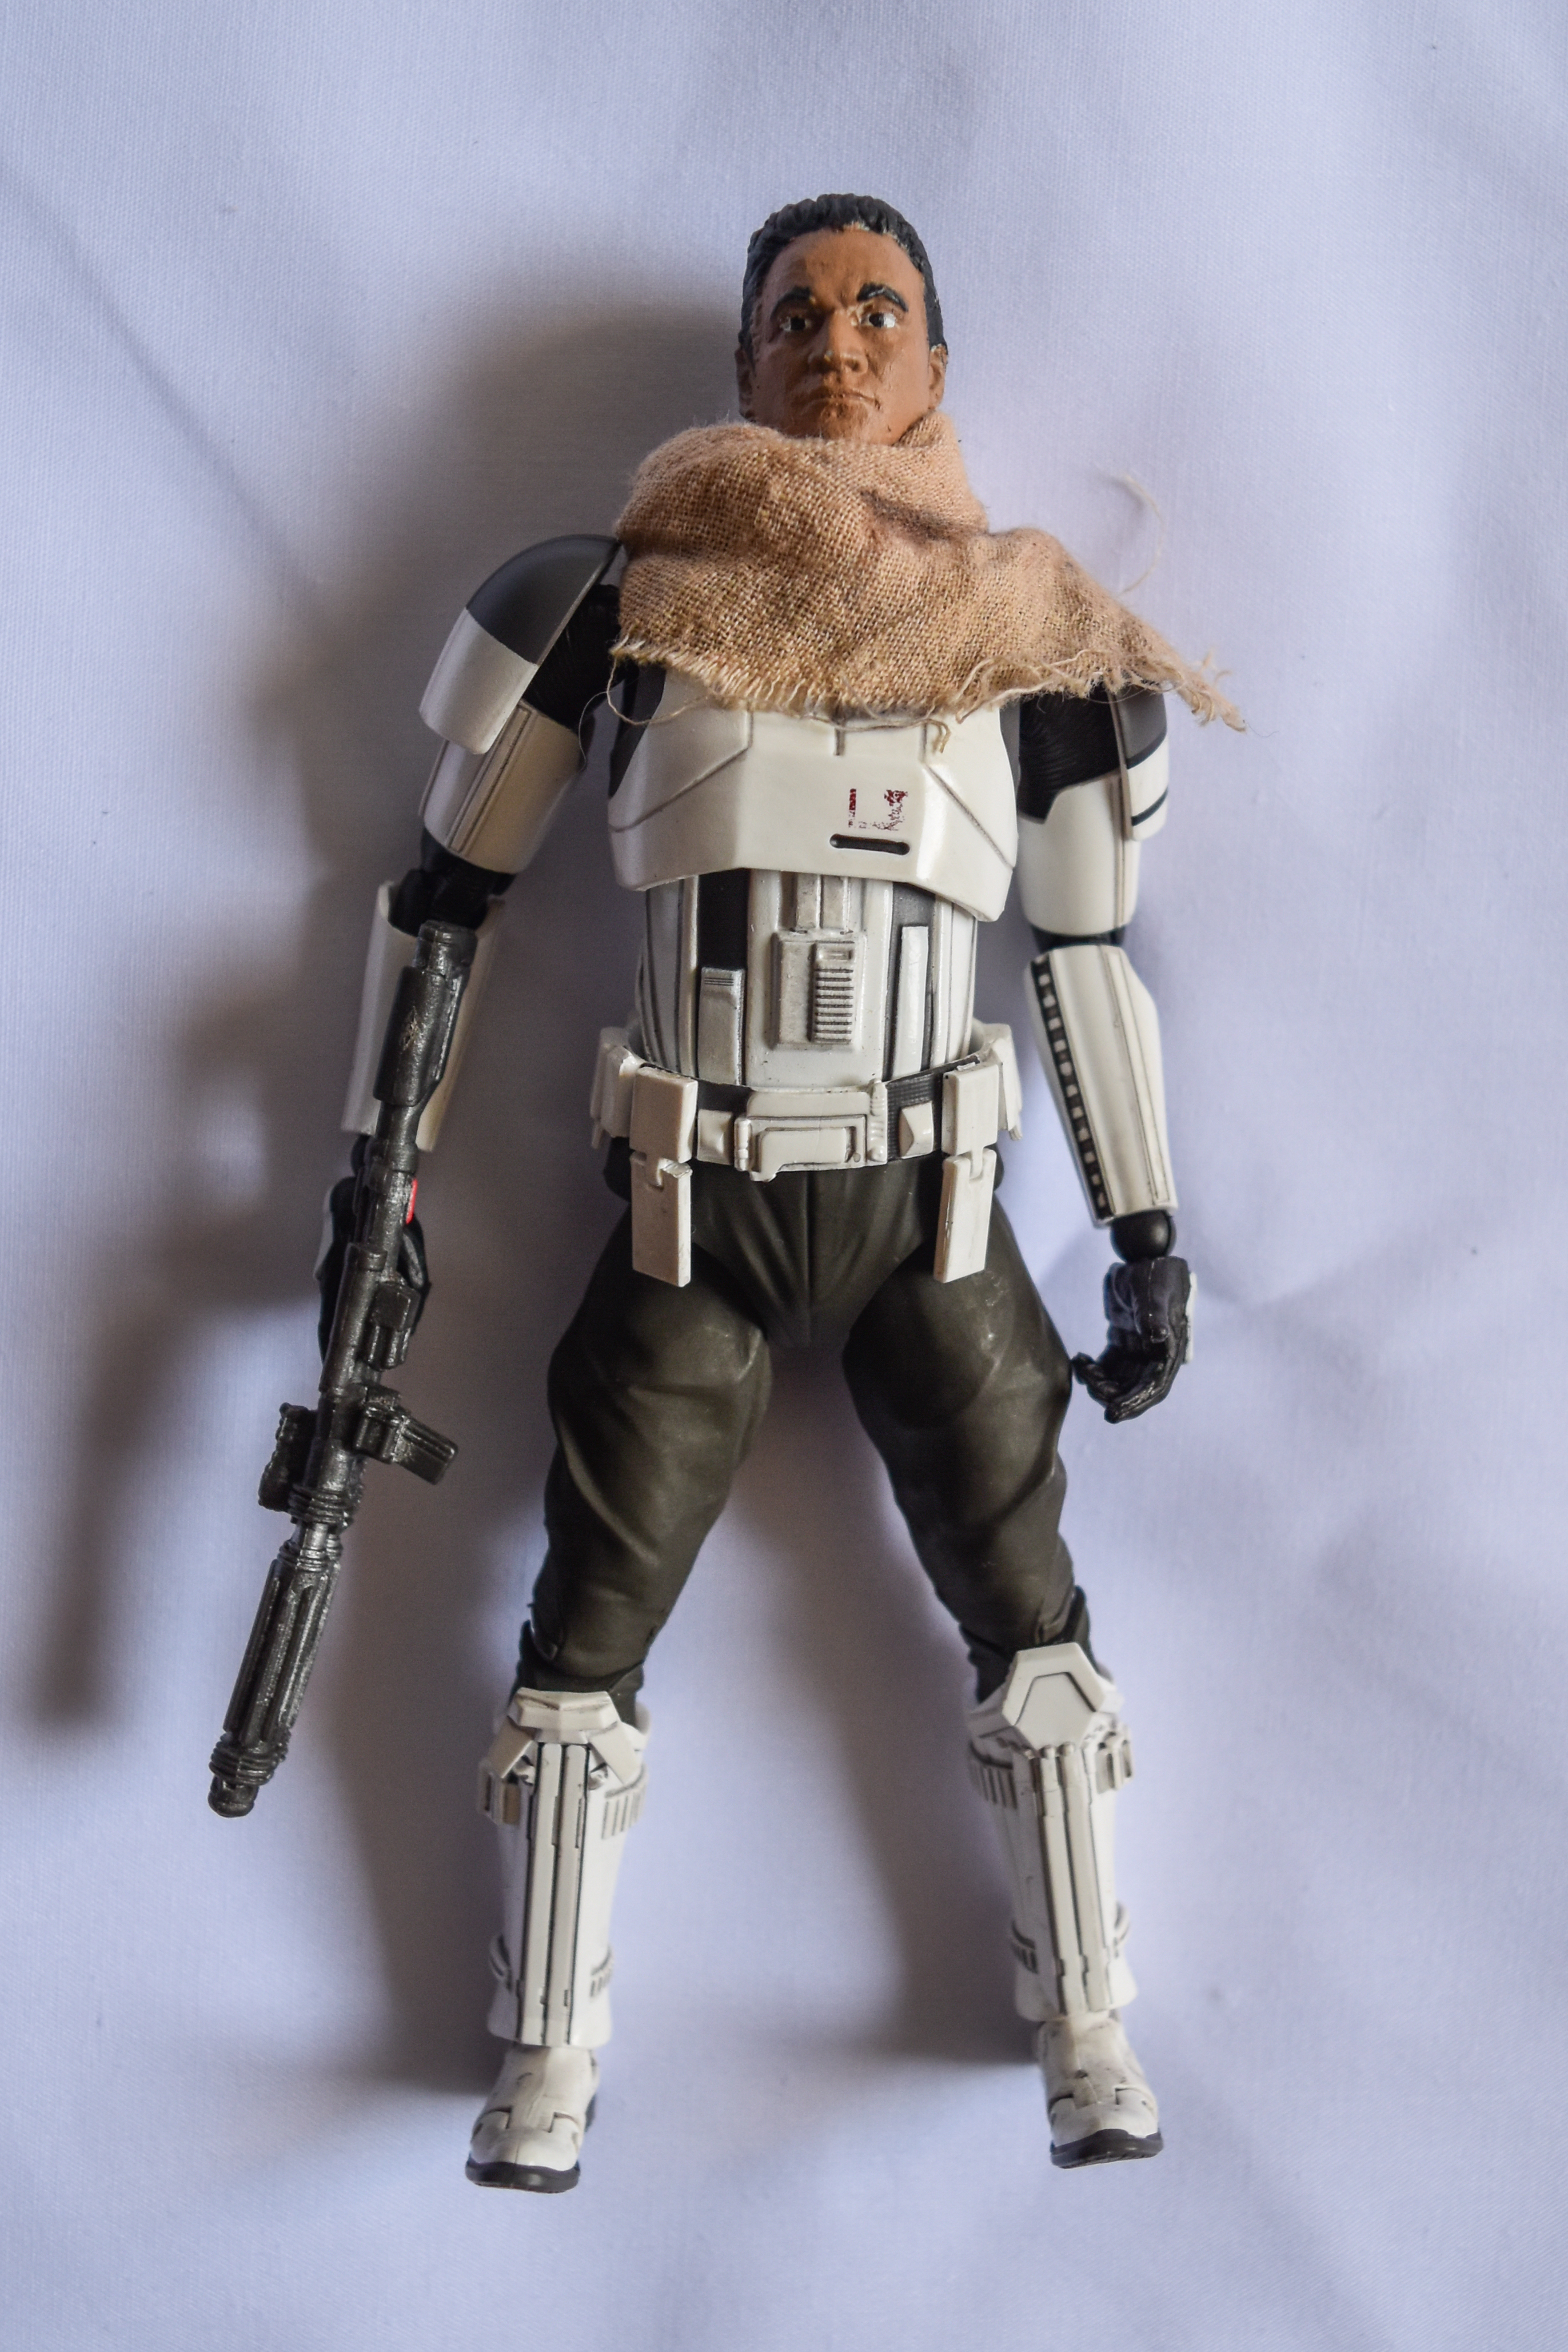 DIY Scarf or Bandanna for Action Figures